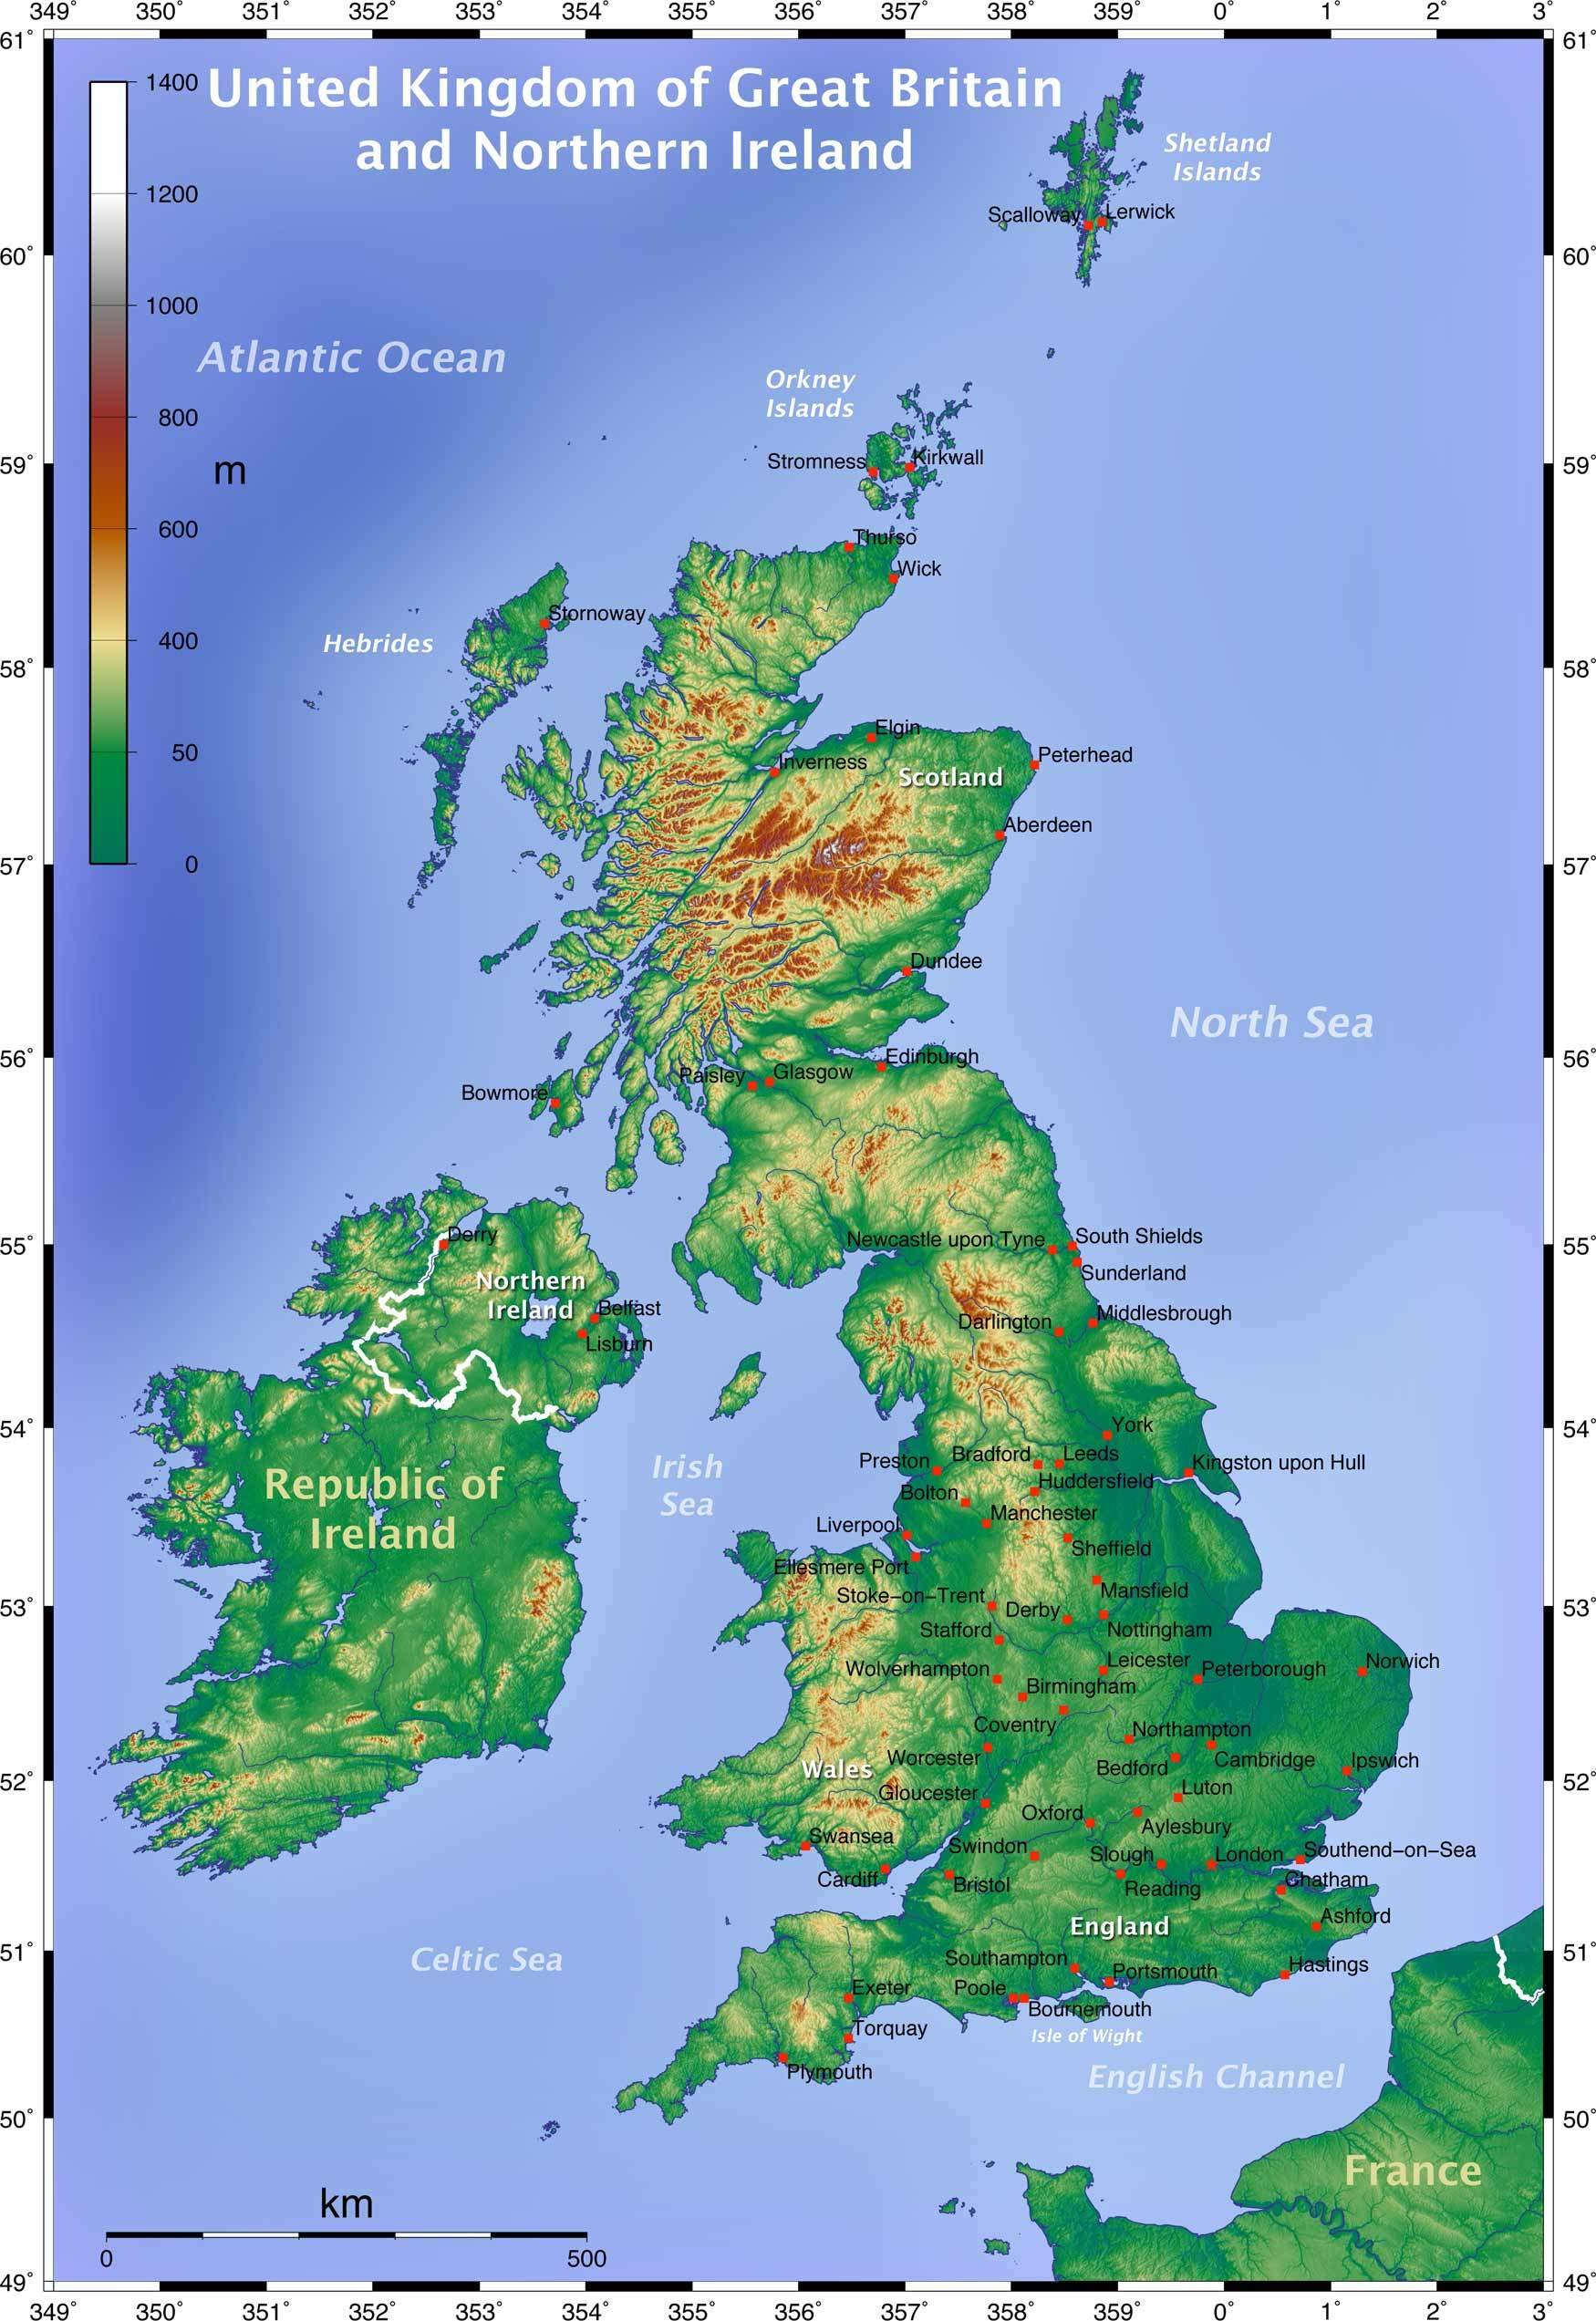 Topographic Map of the Uk • Mapsof.net on labeled map of the united states, topographic map eastern united states, land map of the united states, nautical map of the united states, agricultural map of the united states, wetland location map in united states, scale drawing of the united states, soil map of the united states, historic map of the united states, road map of the united states, climate map of united states, outline map of the united states, thematic map of the united states, military map of the united states, geologic map of the united states, linguistic map of the united states, tree map of the united states, relief map of united states, map of the western united states, map map of the united states,